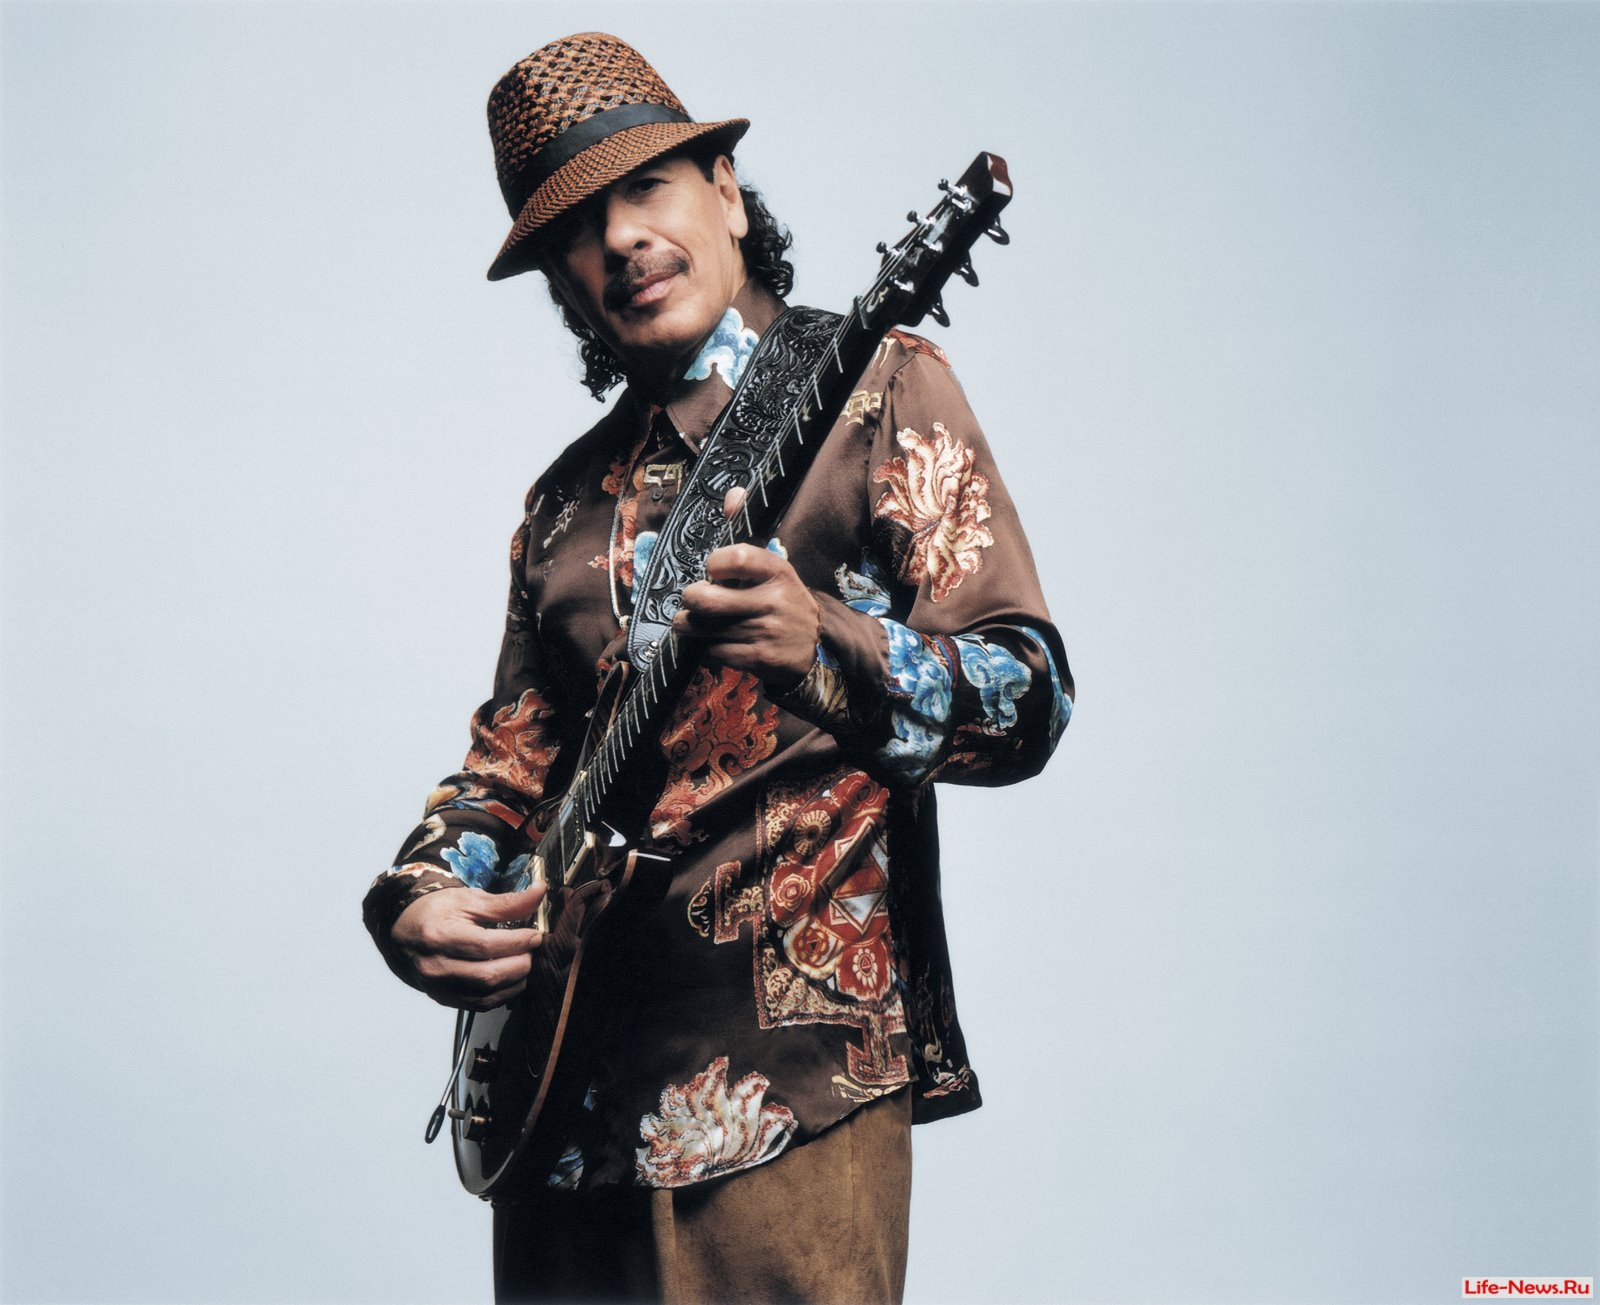 a biography of carlos santana a world famous rock icon As carlos santana hits his 70th birthday, the icon shows no signs of who is best known for combining his mexican roots with a rock beat in.